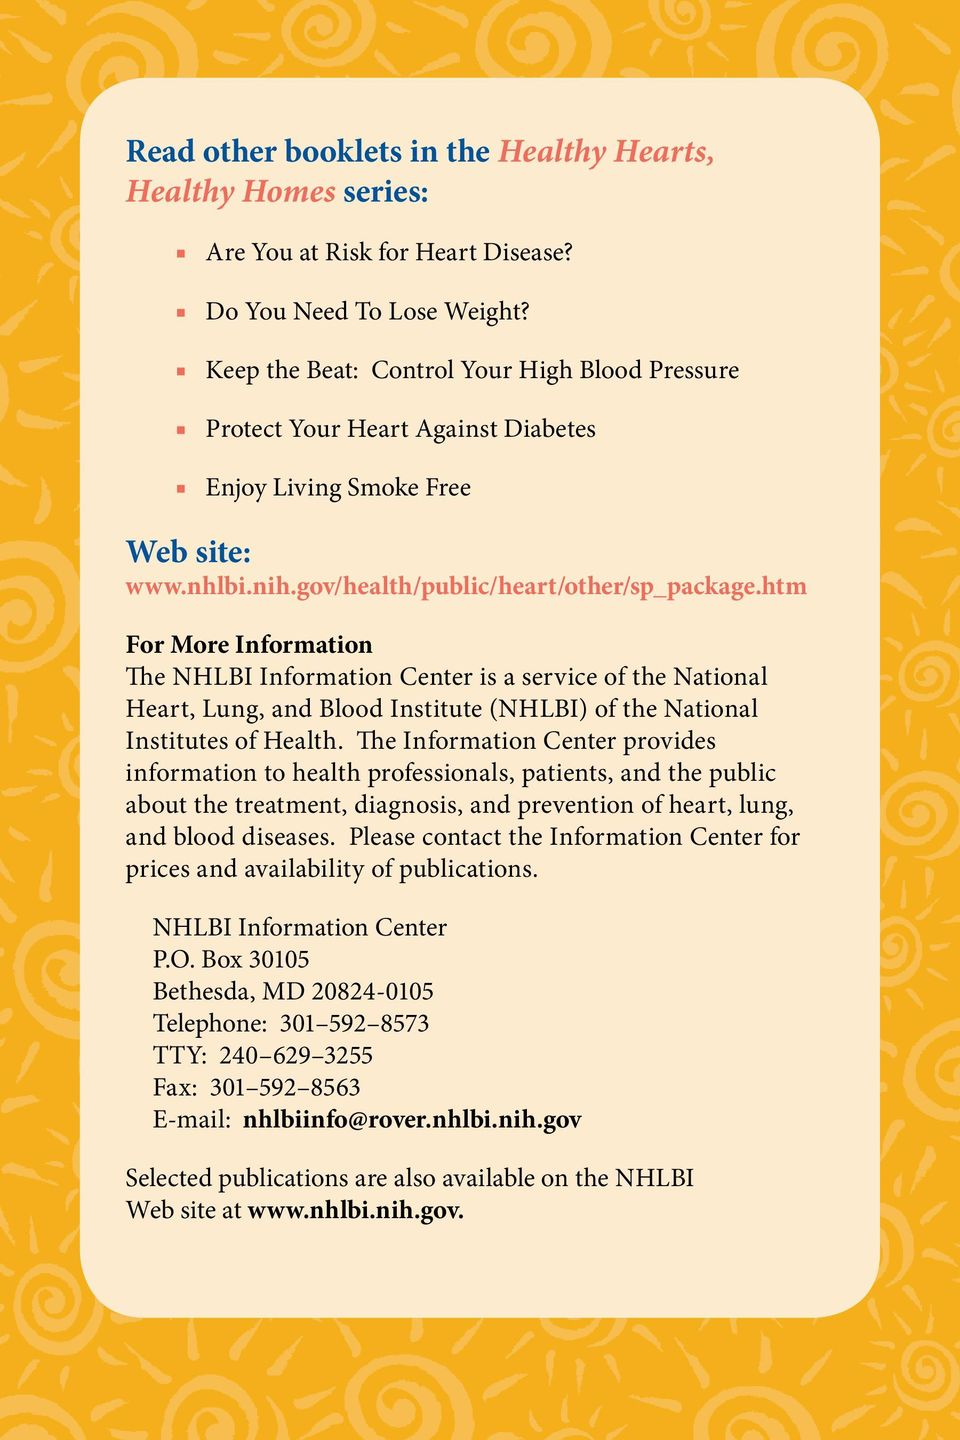 htm For More Information The NHLBI Information Center is a service of the National Heart, Lung, and Blood Institute (NHLBI) of the National Institutes of Health.